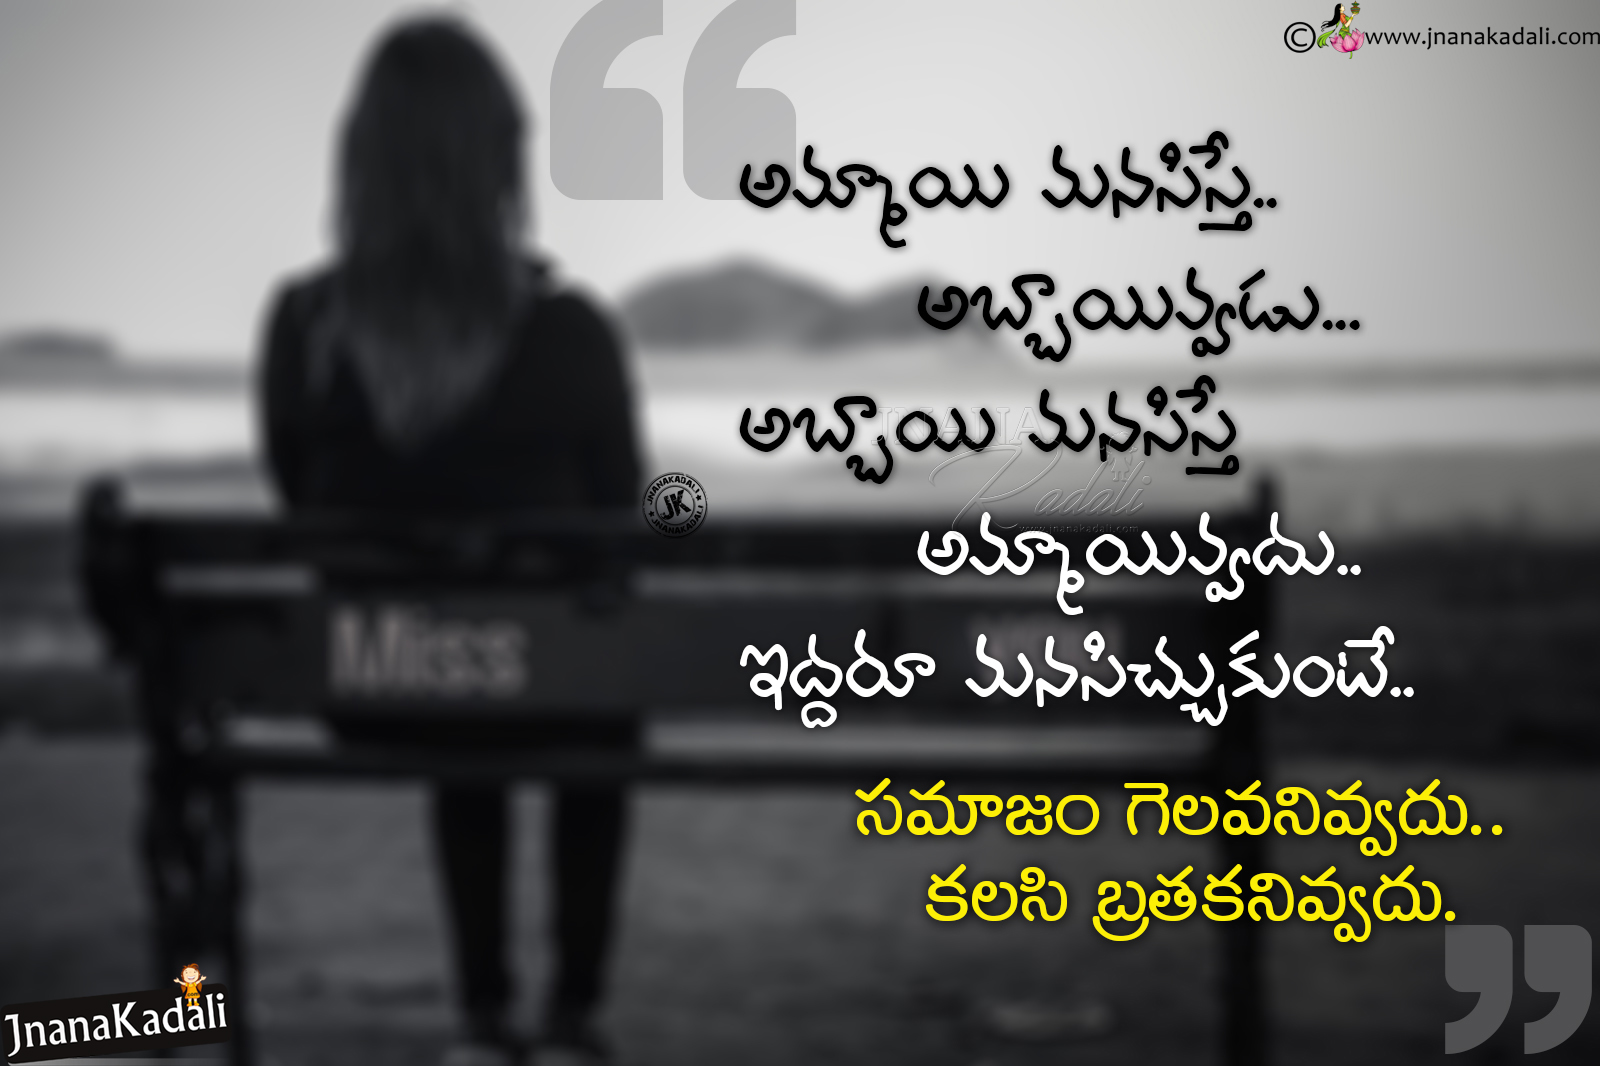 Love Quotes Hd Images In Telugu Vinnyoleo Vegetalinfo